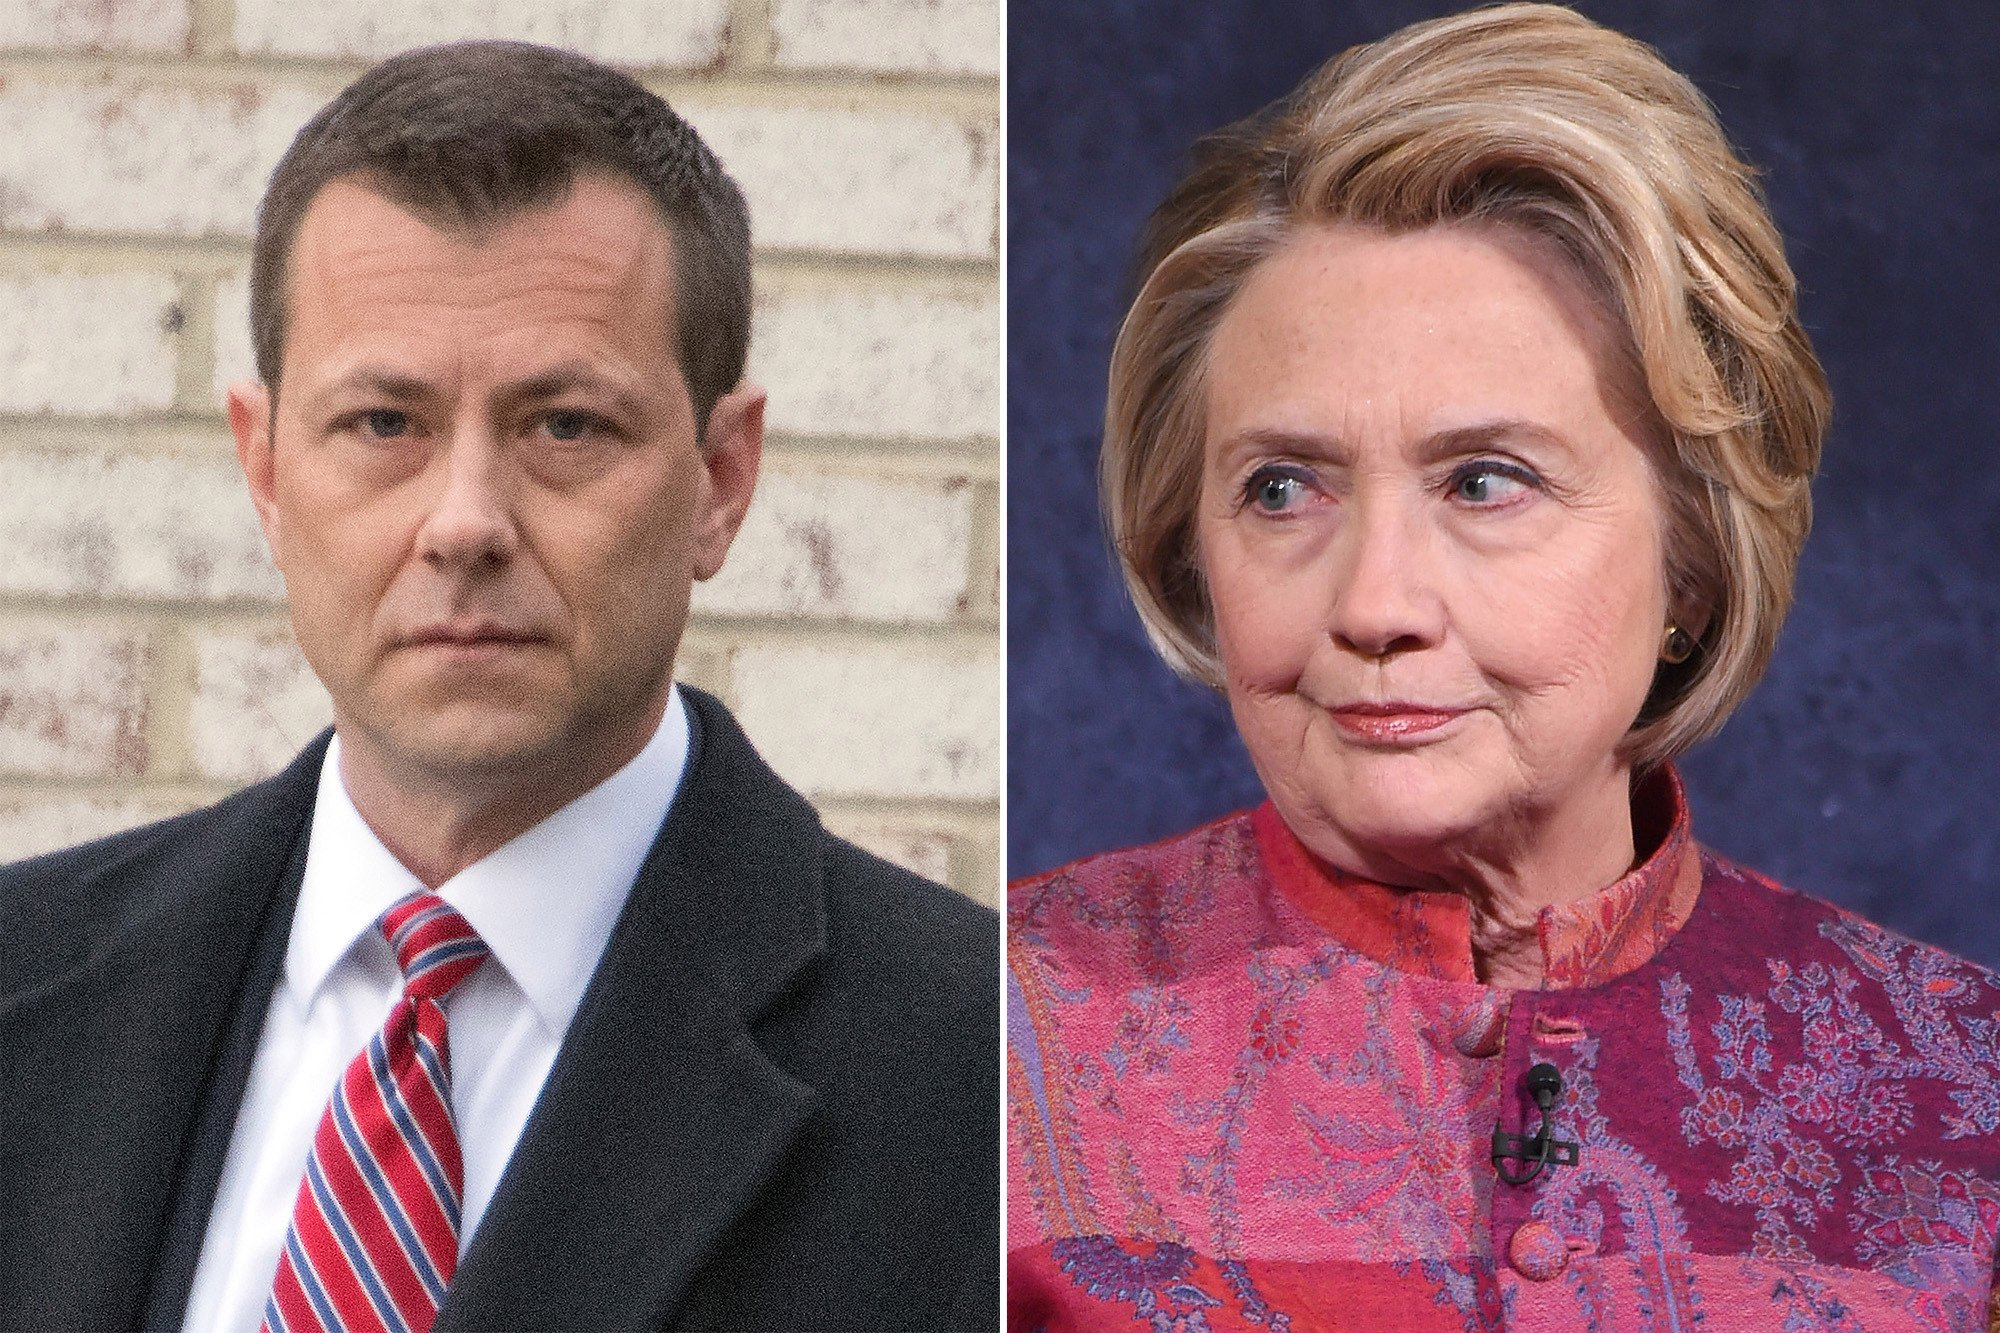 Disgraced FBI agent drafted letter about reopening Clinton probe